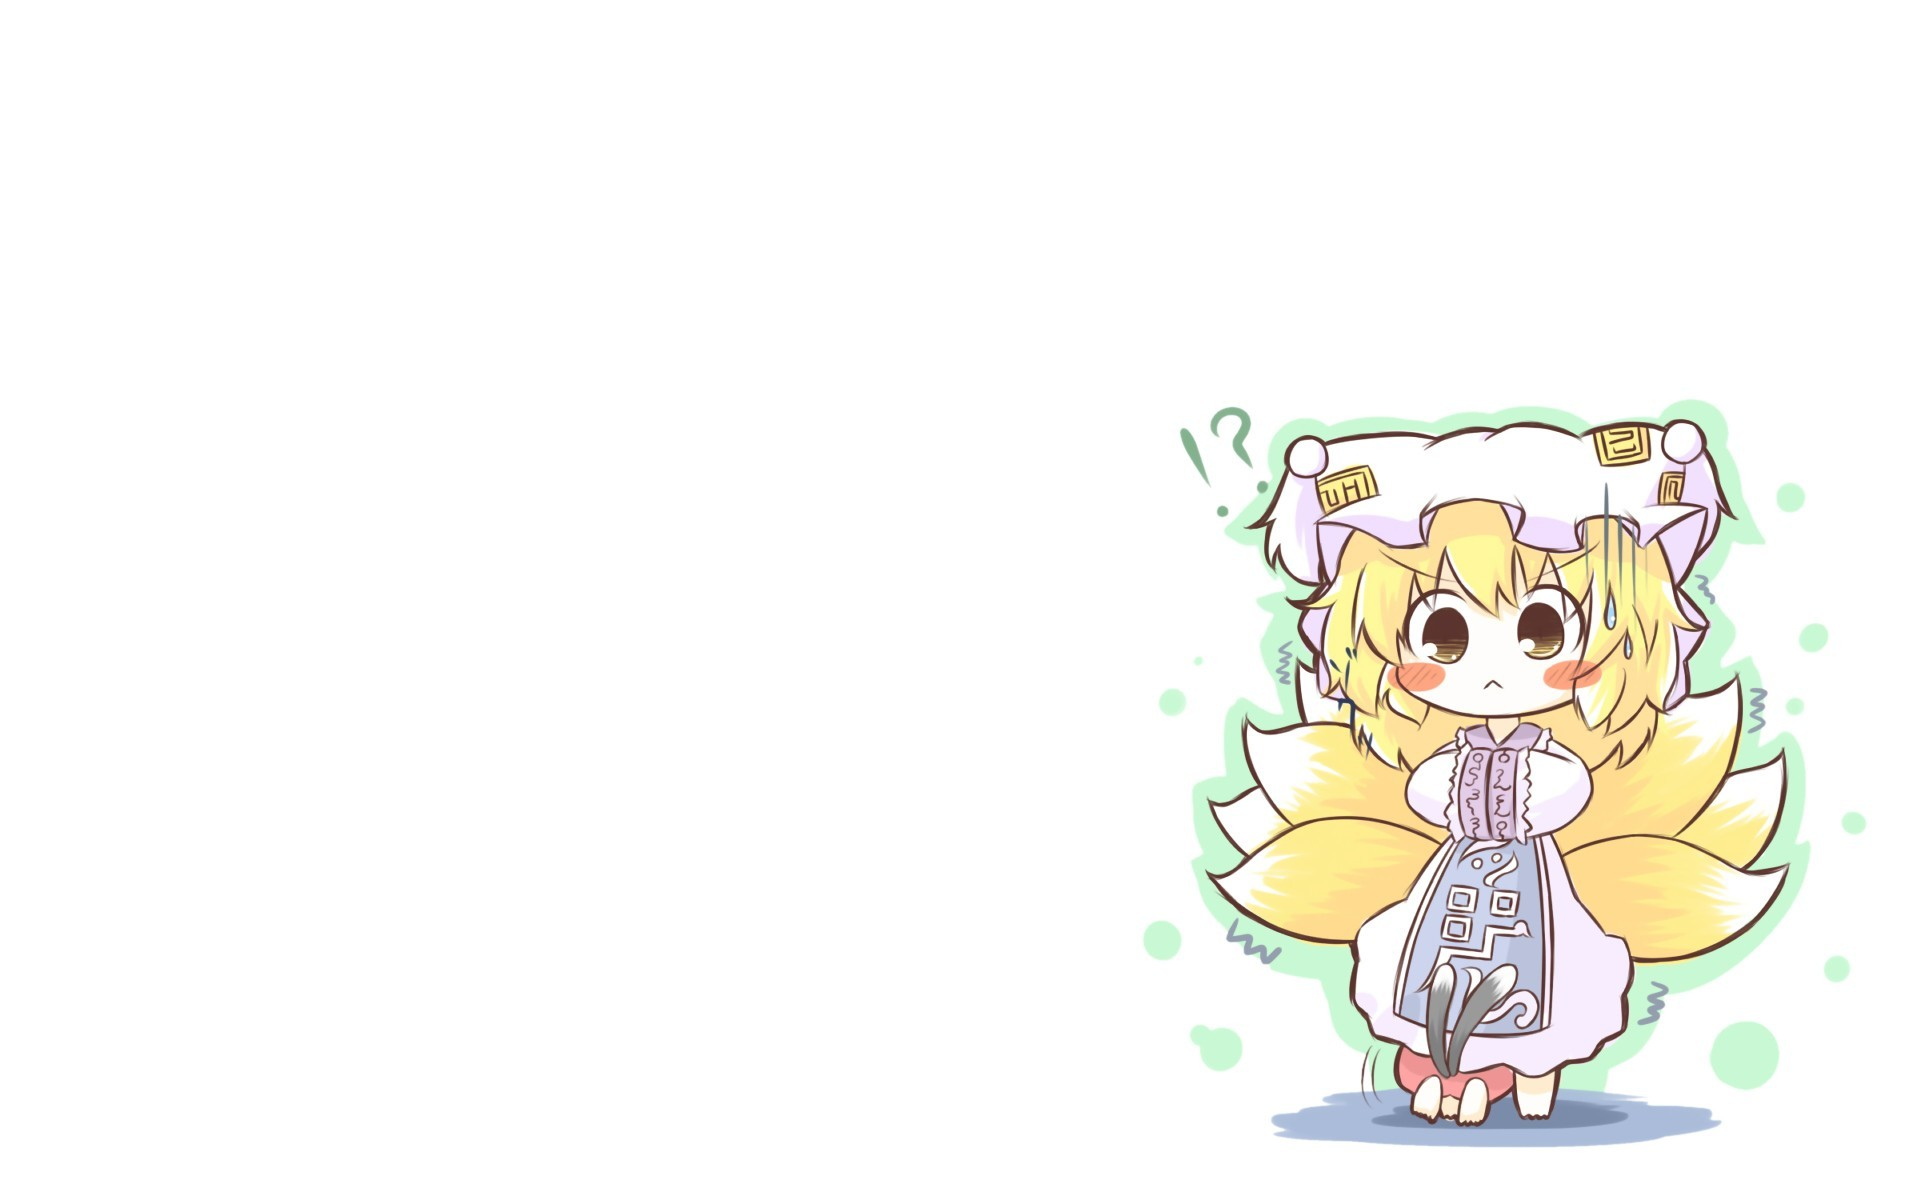 tails touhou dress Chibi HD Wallpaper